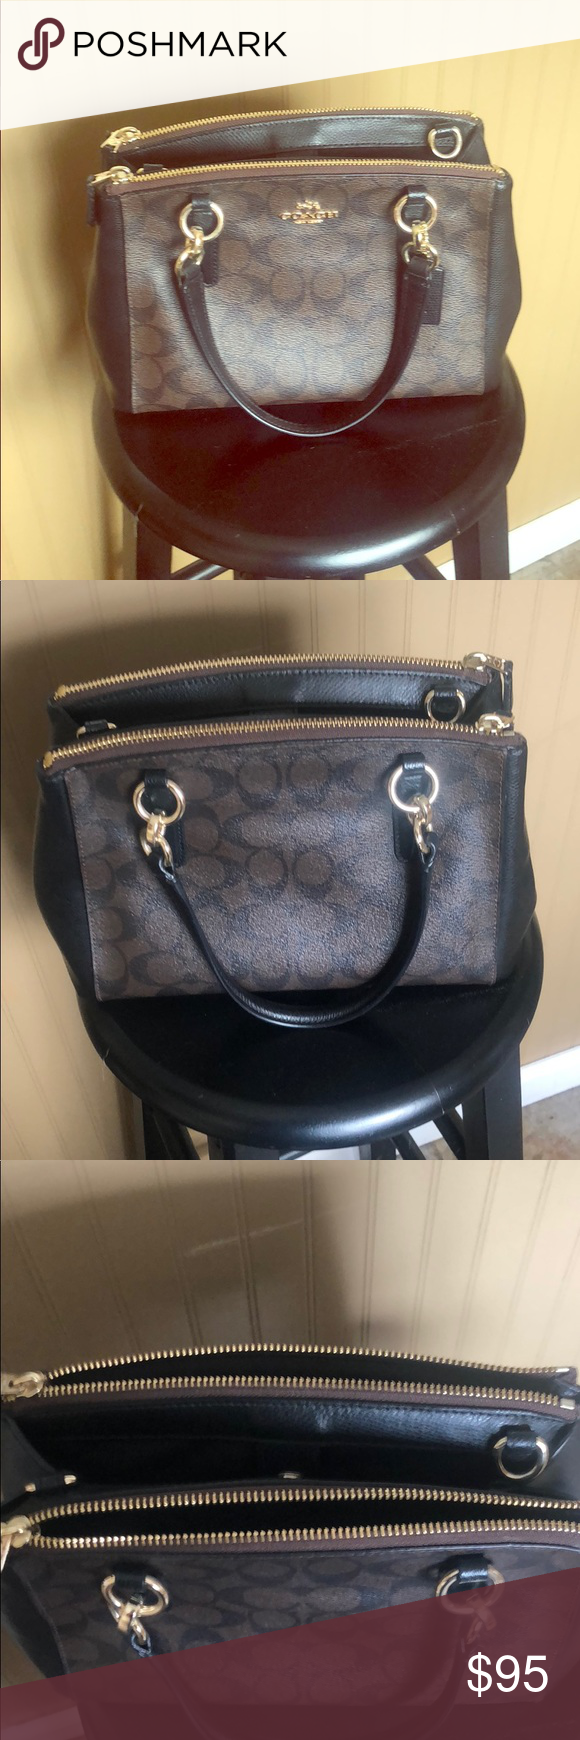 Coach Christie Carryall Signature Khaki Black In 2018 My Posh Mini Crossbody Gently Used Small Crossgrain